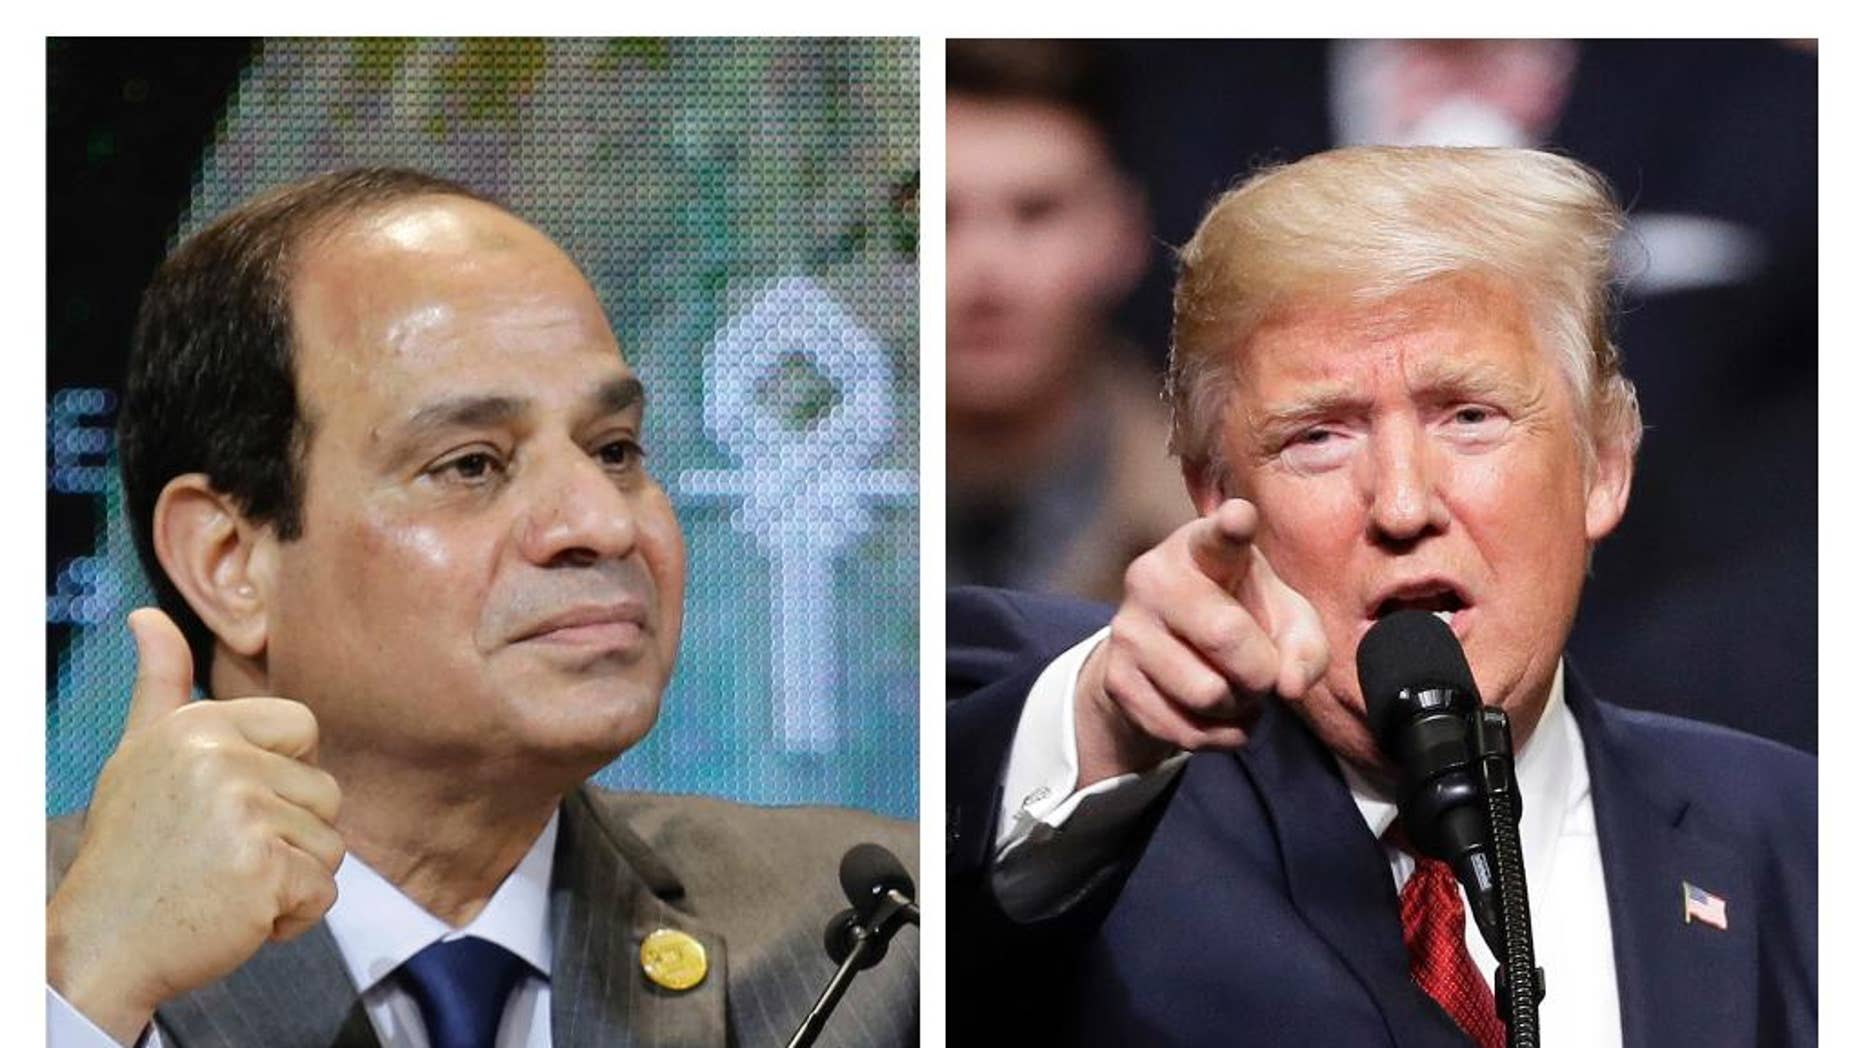 This combination of two photos shows Egyptian President Abdel-Fattah el-Sissi, left, and U.S. President Donald Trump, right. El-Sissi is a career military man of taciturn ways, his host Trump a brash real estate developer and reality TV star who inherited a fortune. Yet their instincts and language seem strikingly similar. (AP Photo)